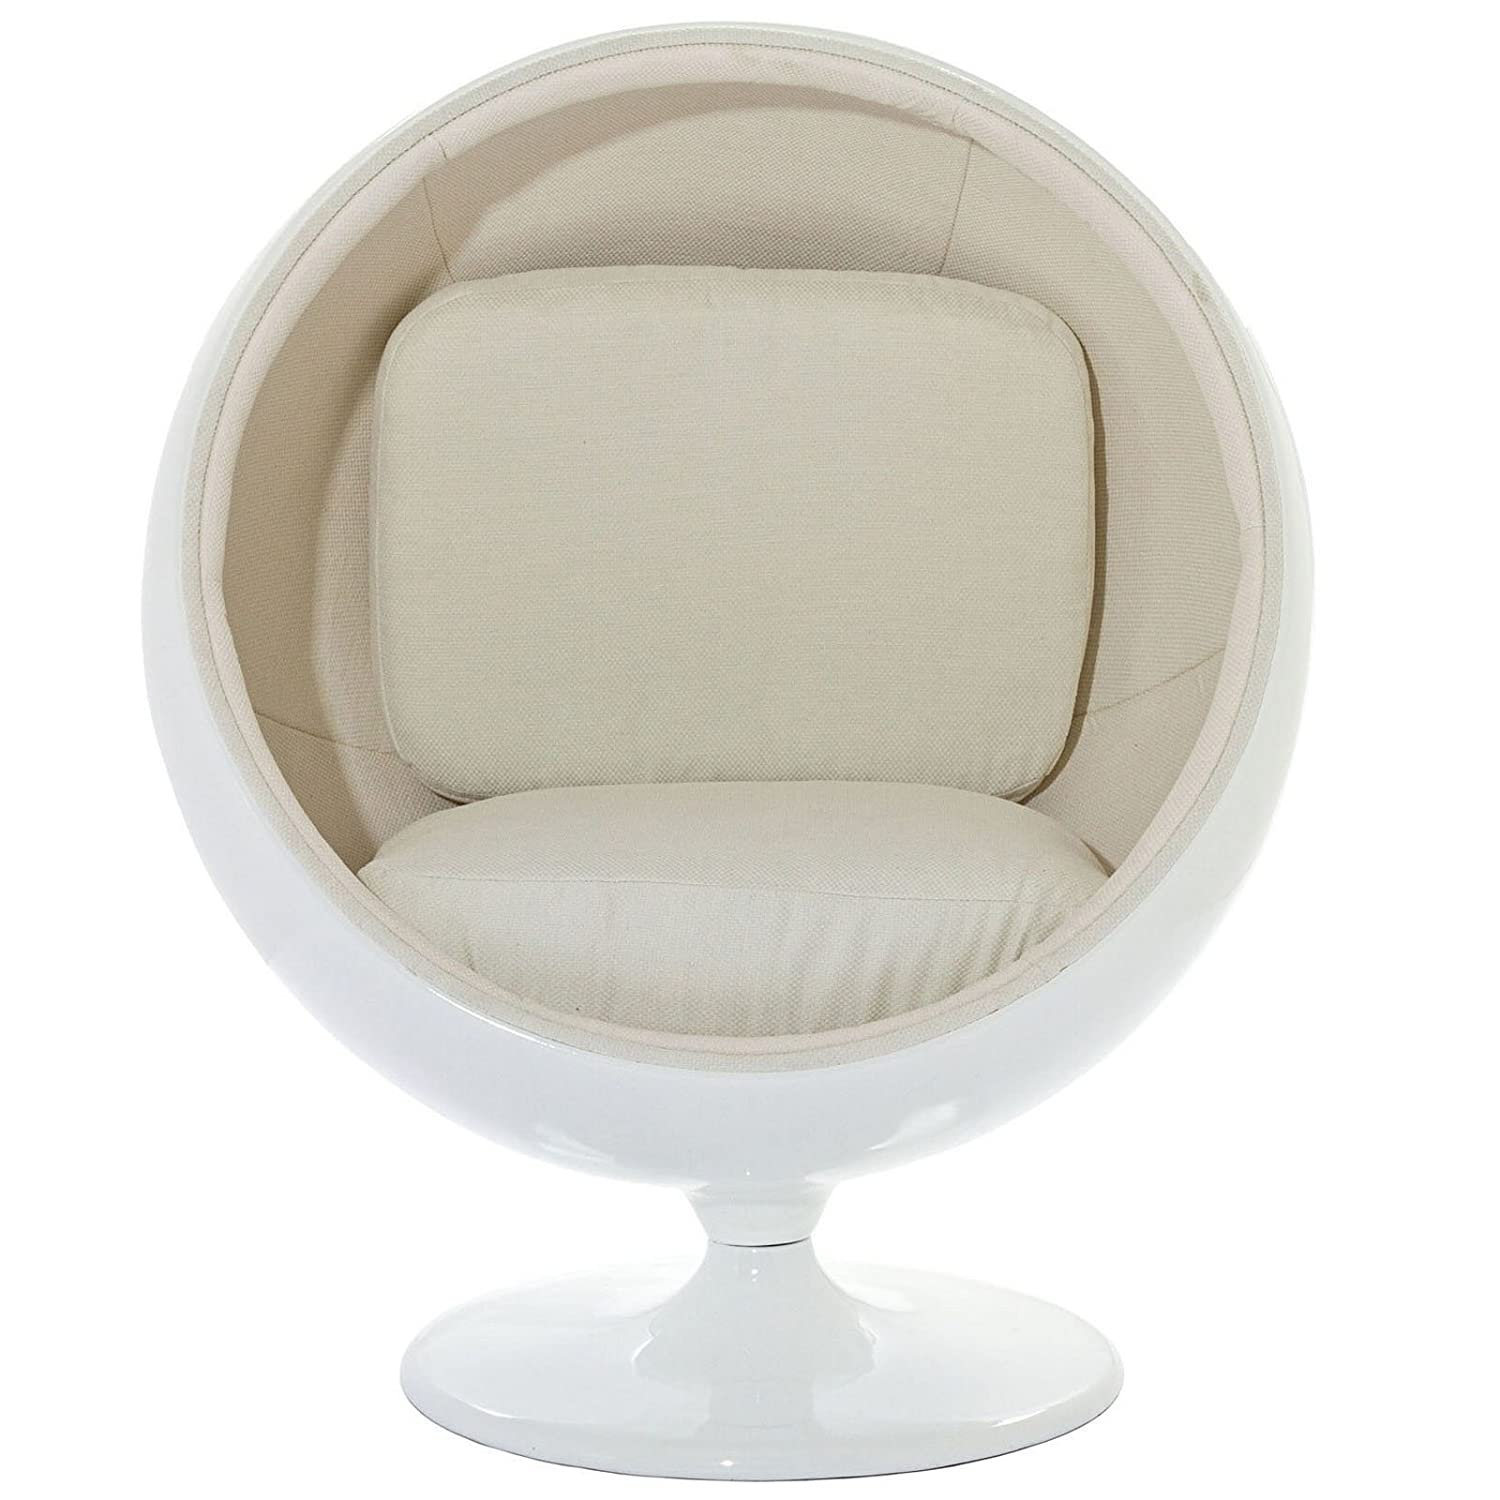 lexmod eero aarnio style ball chair in white amazonca home u0026 kitchen